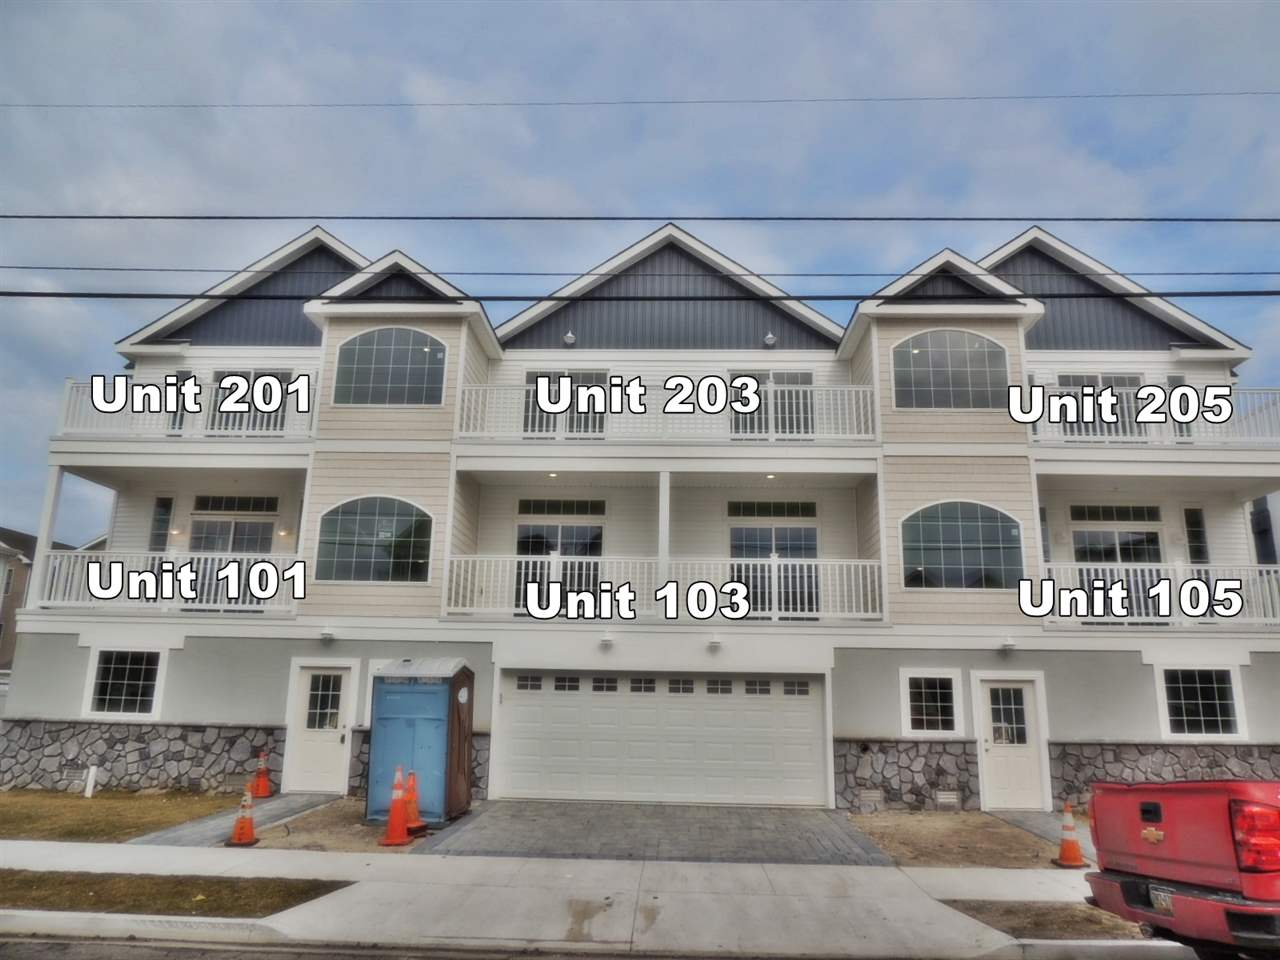 421, Unit 103 23rd Avenue, North Wildwood